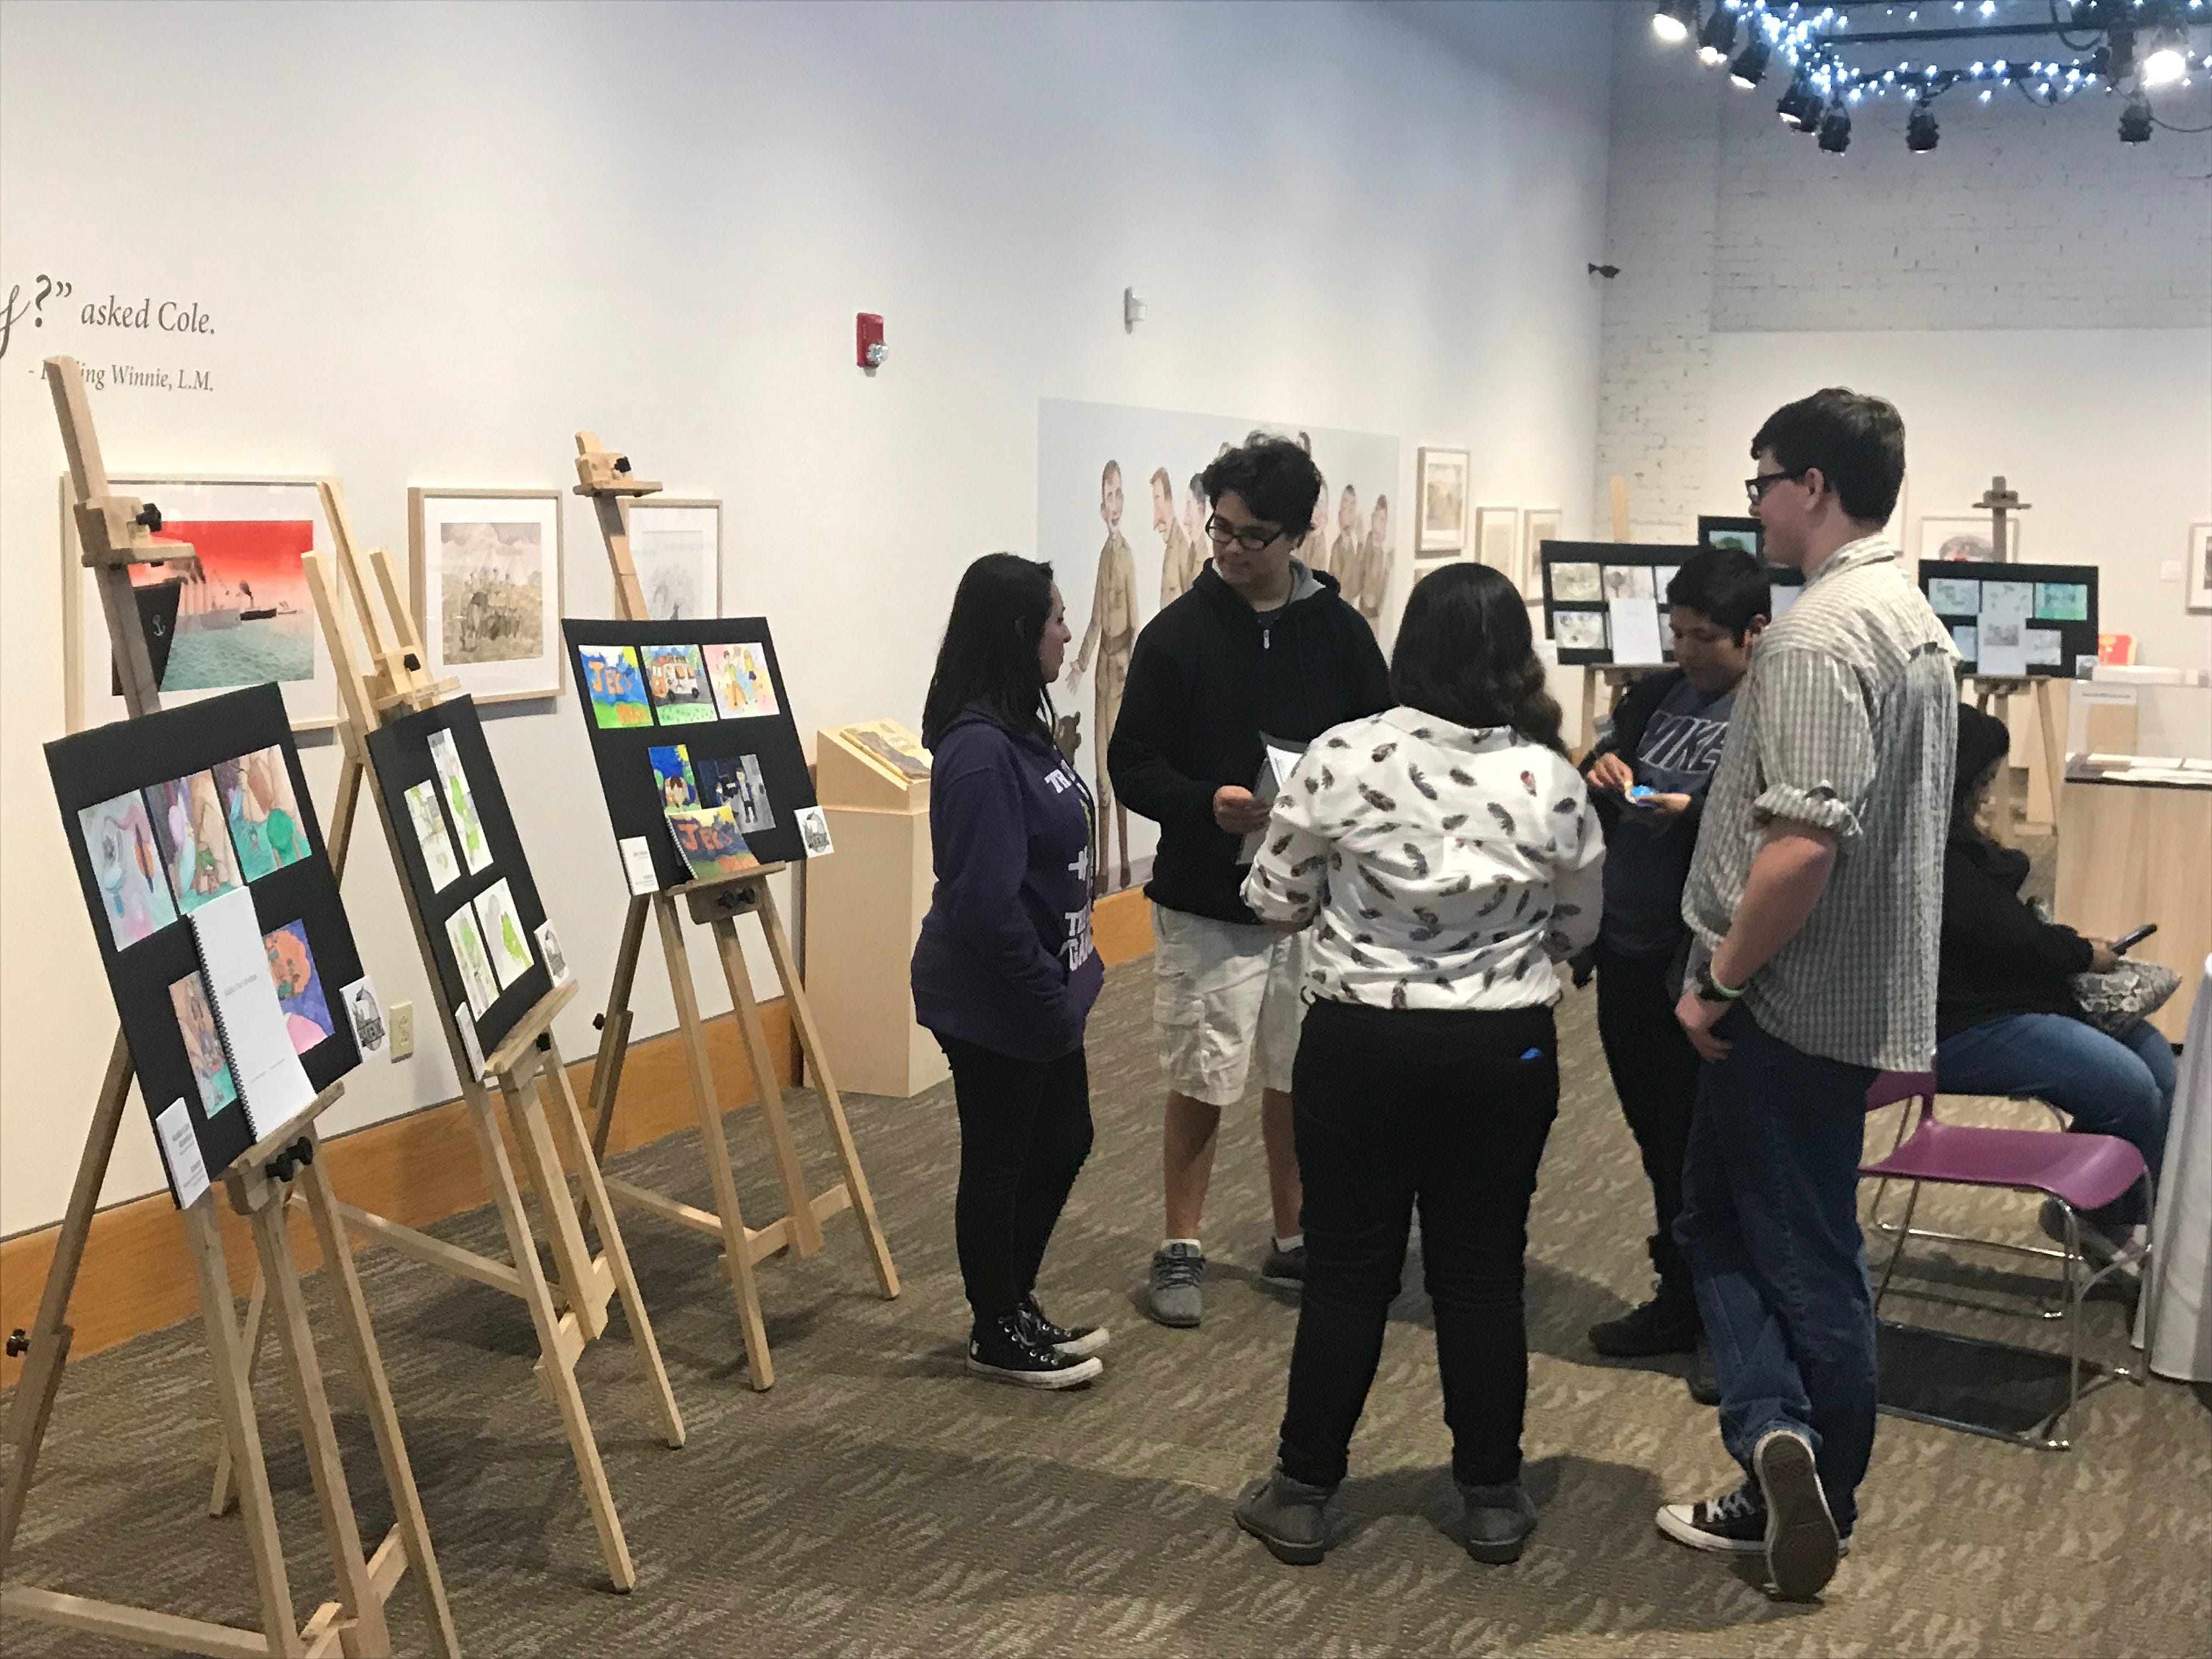 Student works from ATEMS, both art and writing, fit perfectly at NCCIL one-day exhibit